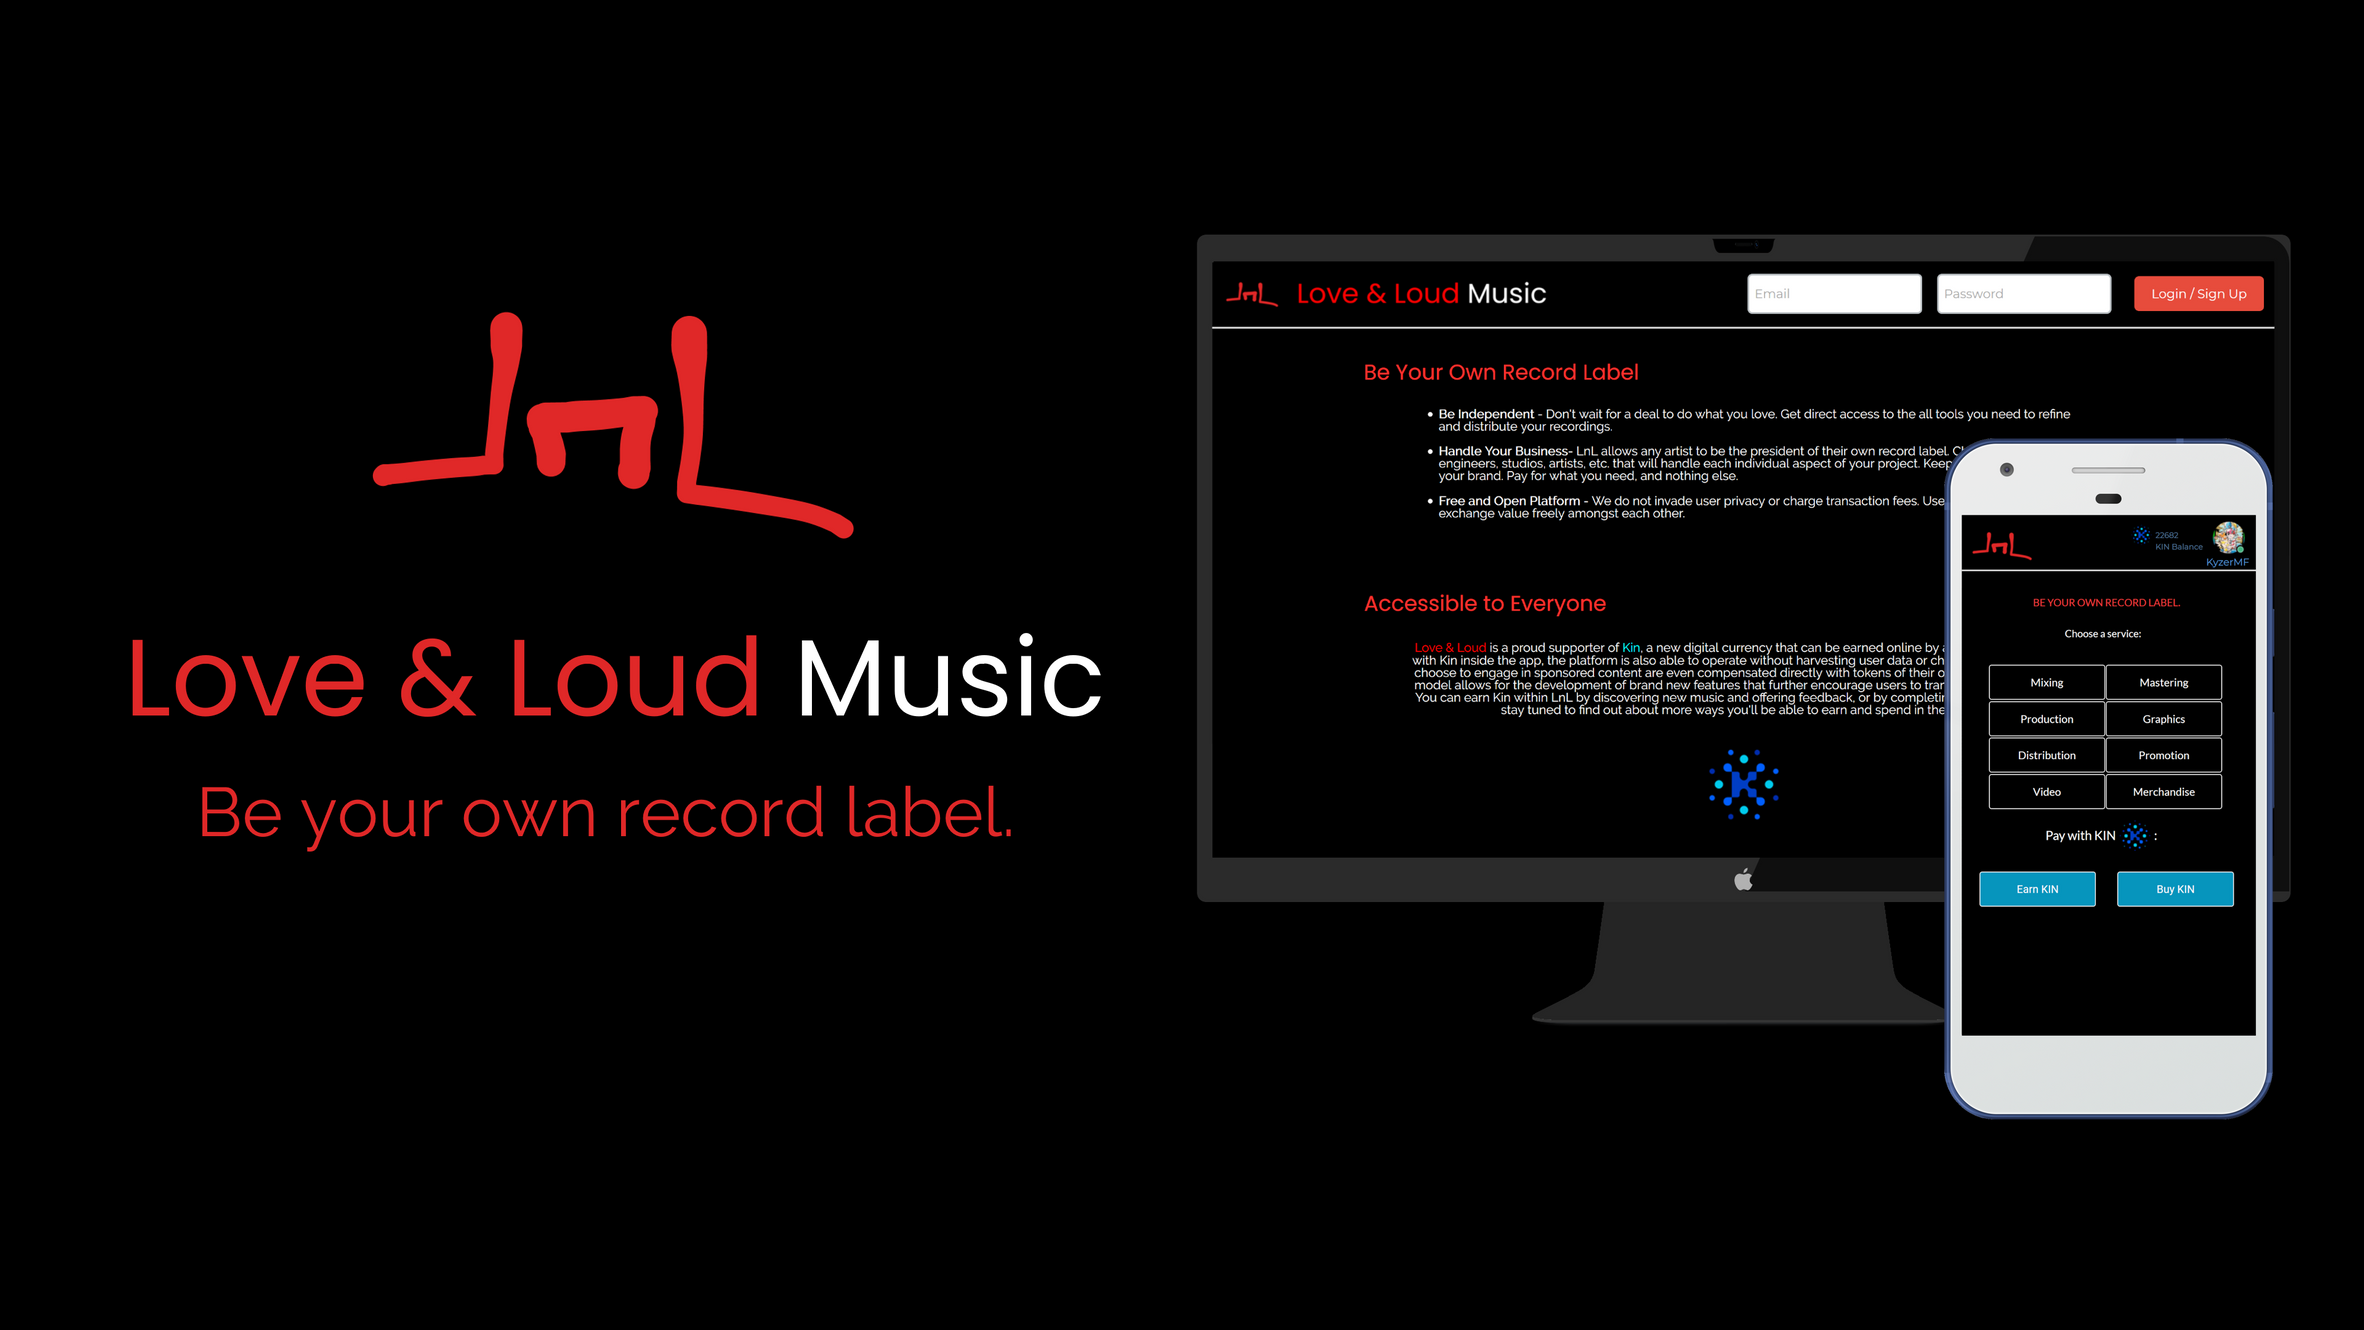 Privacy Policy | Love & Loud Music: Be Your Own Record Label